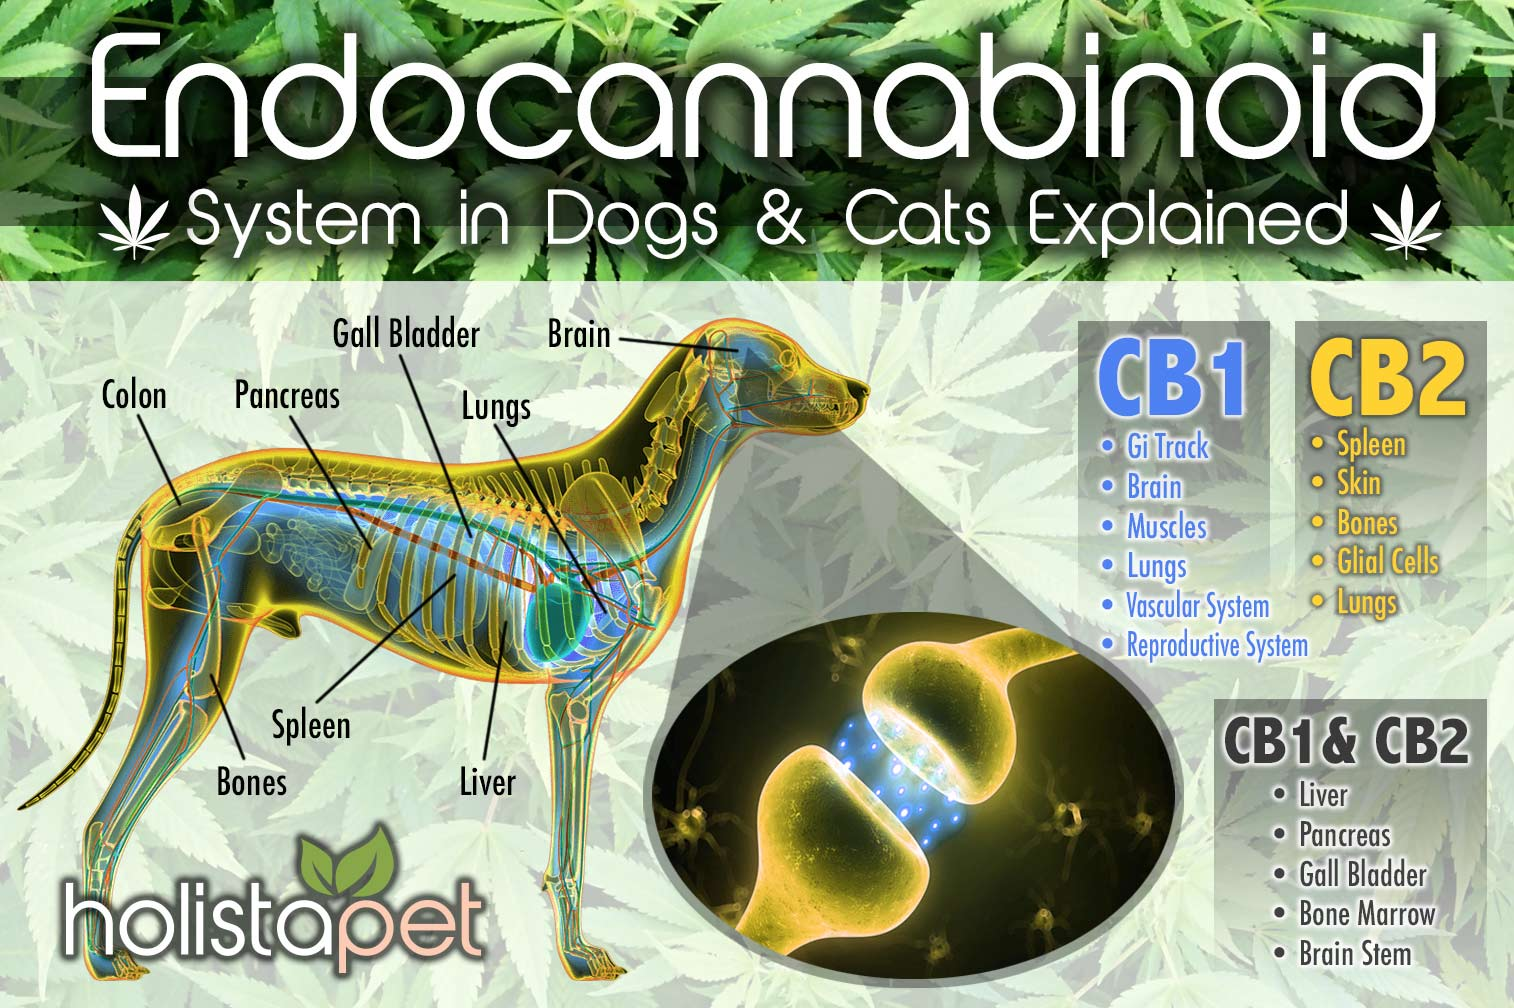 Endocannabinoid-system-in-dogs-explained